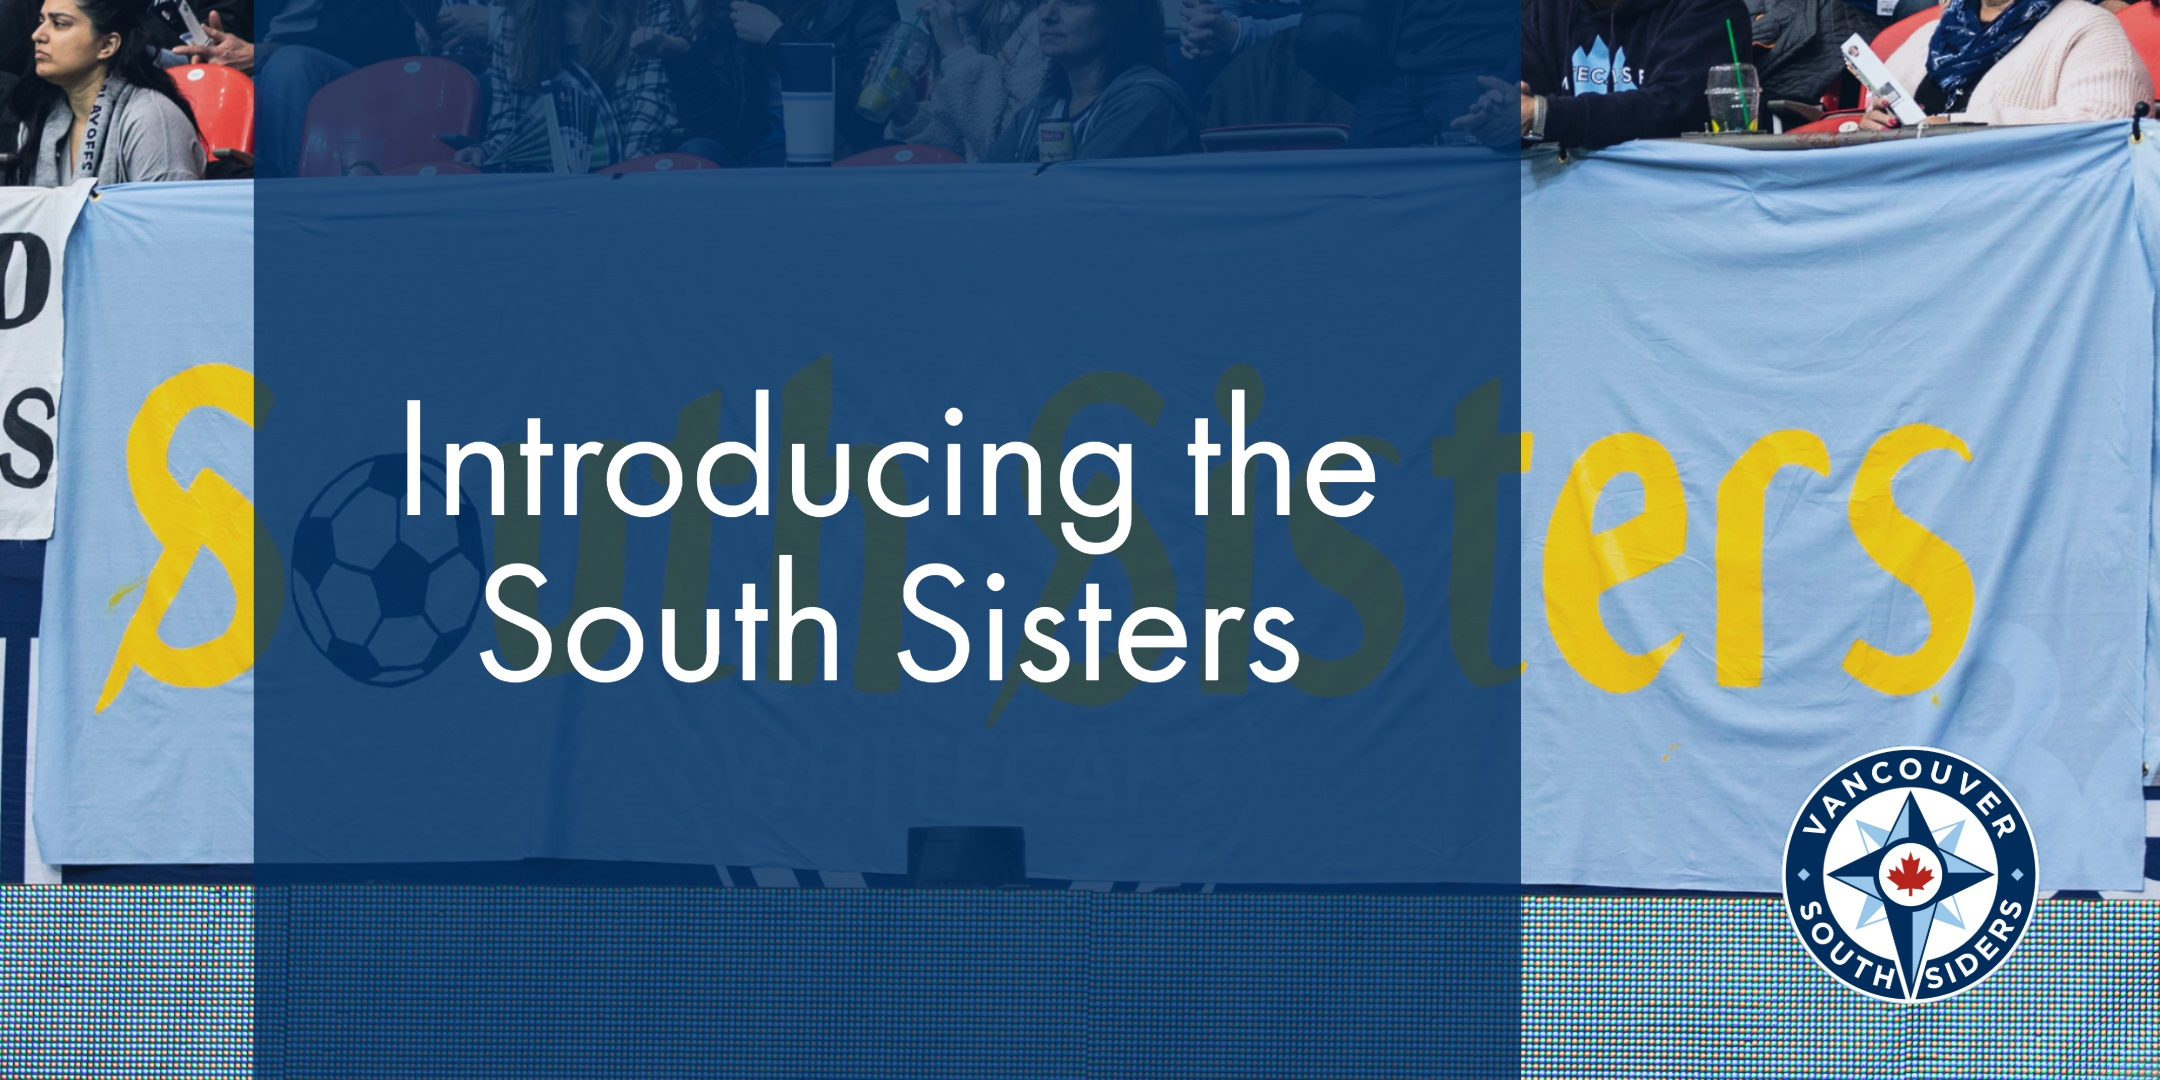 Introducing the South Sisters